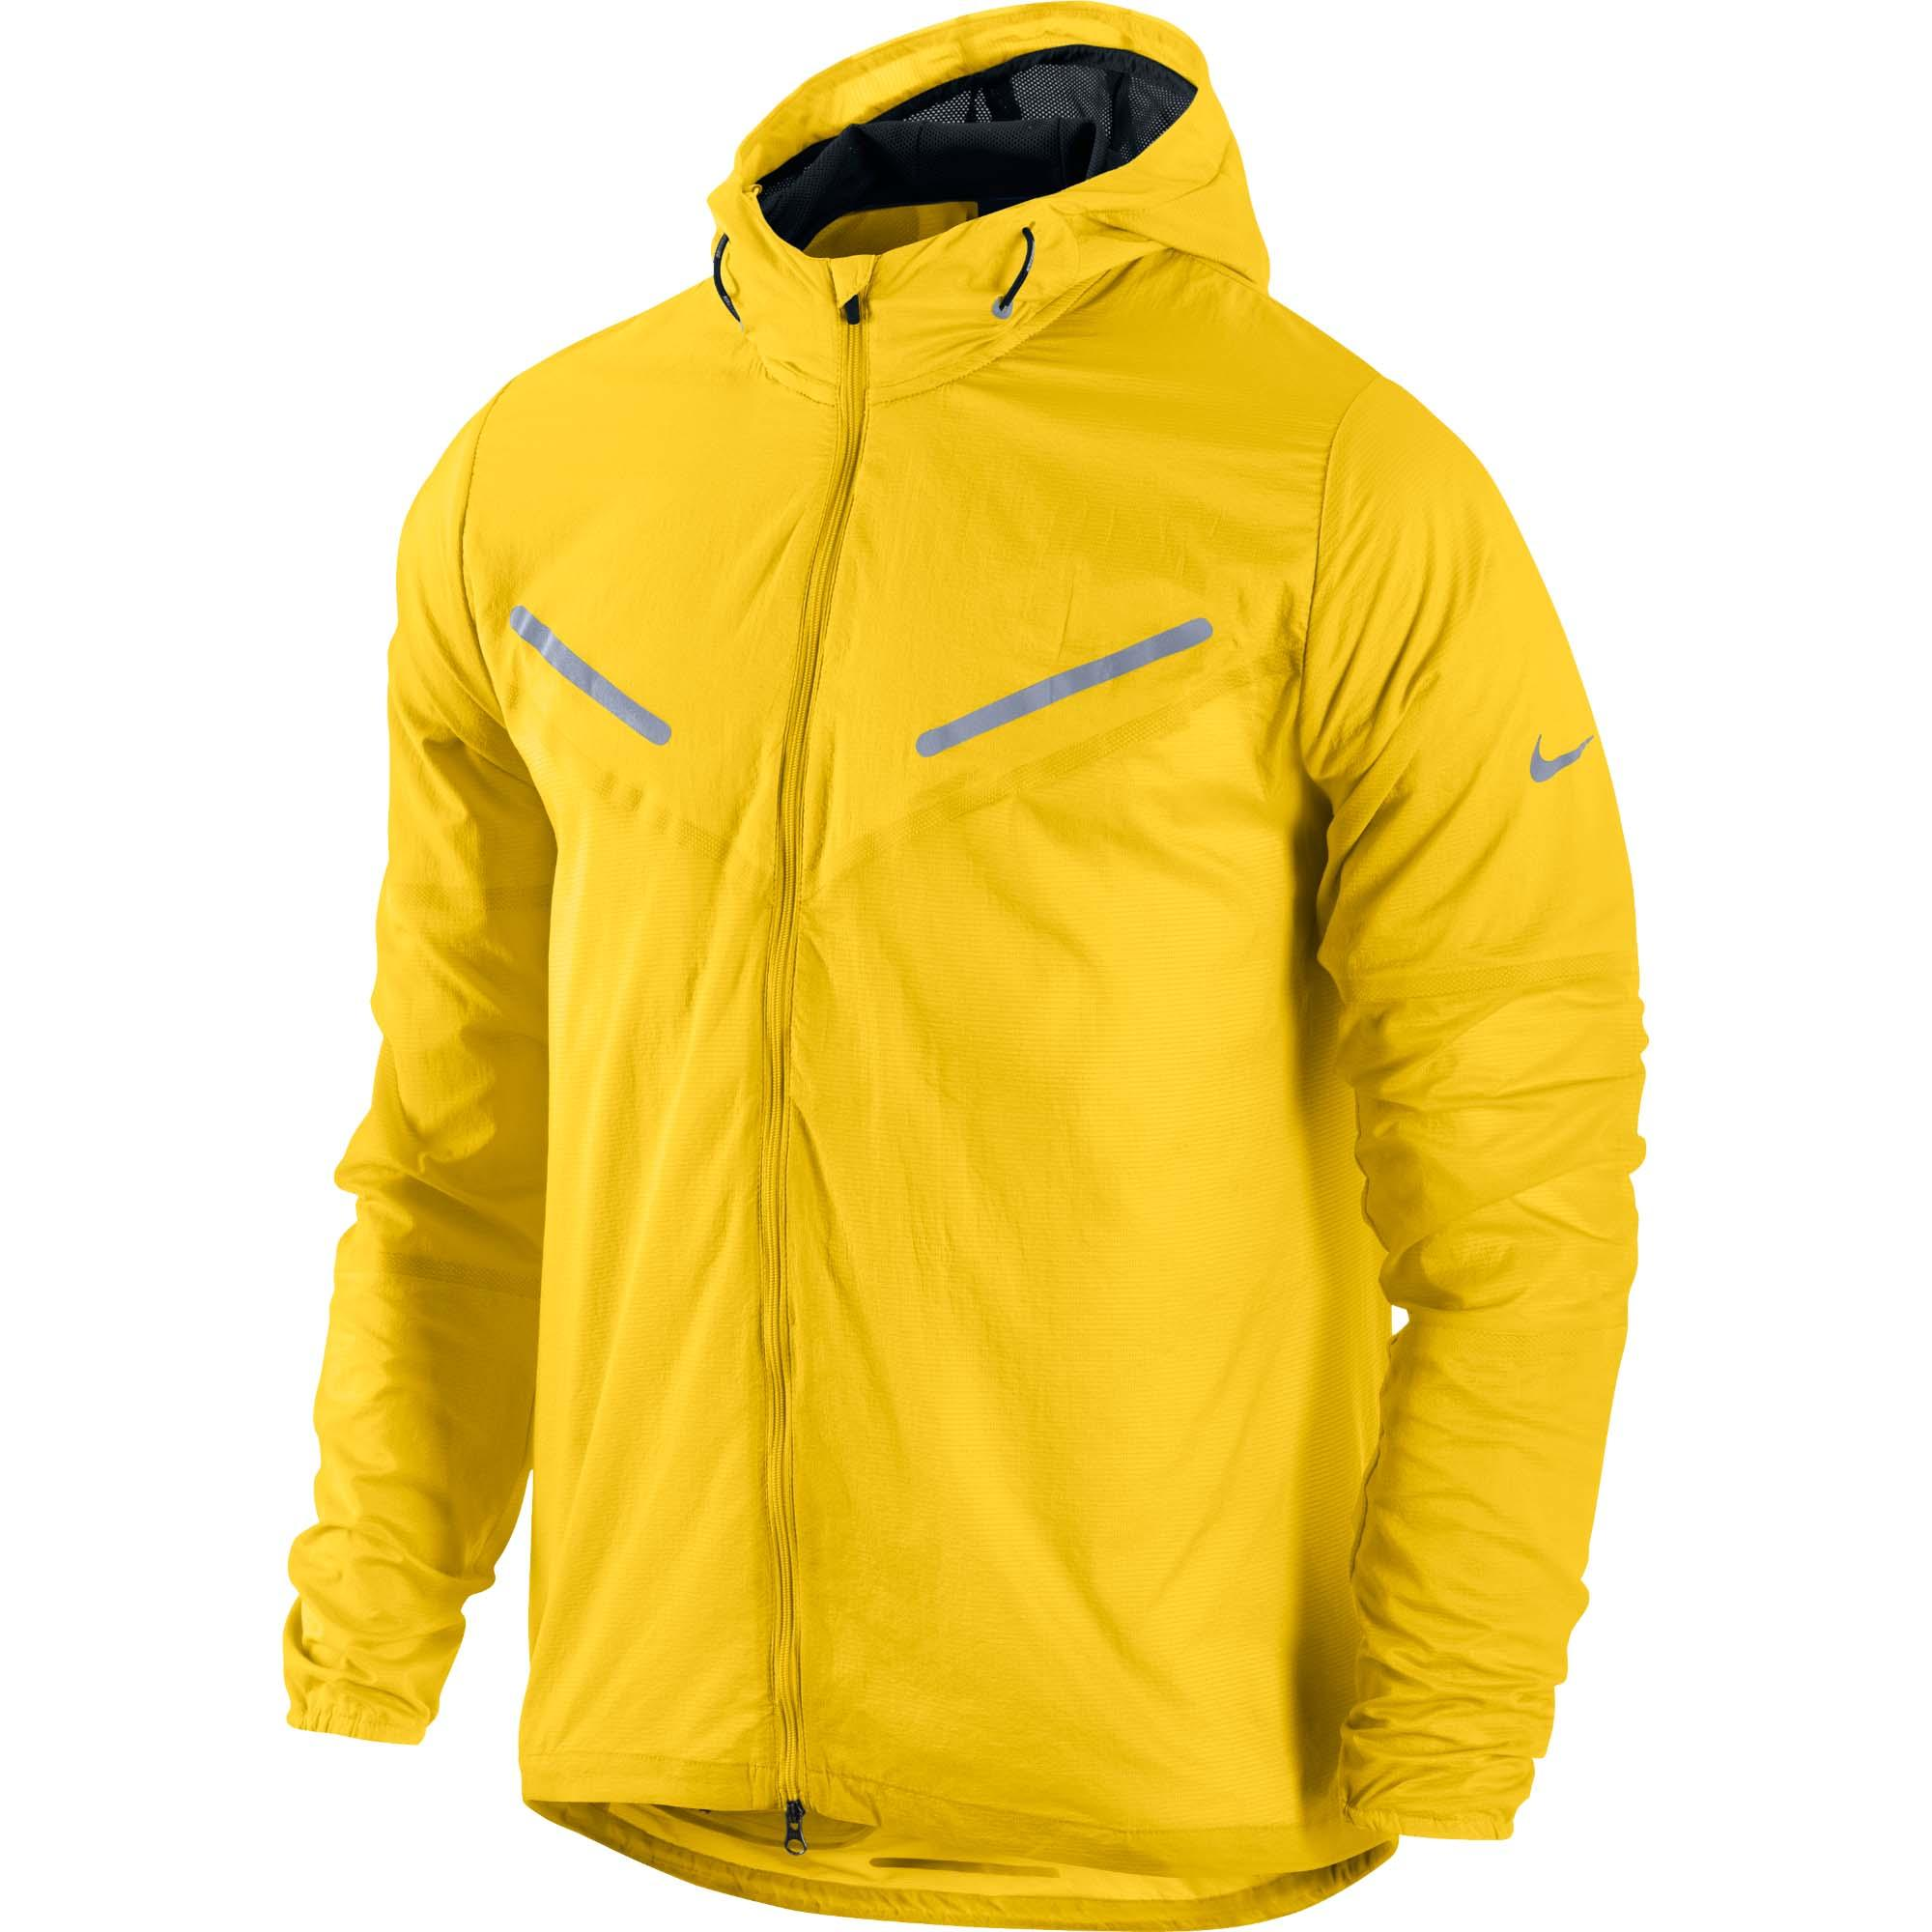 498202bad48d Nike Hurricane Vapor Jacket Man buy and offers on Outletinn